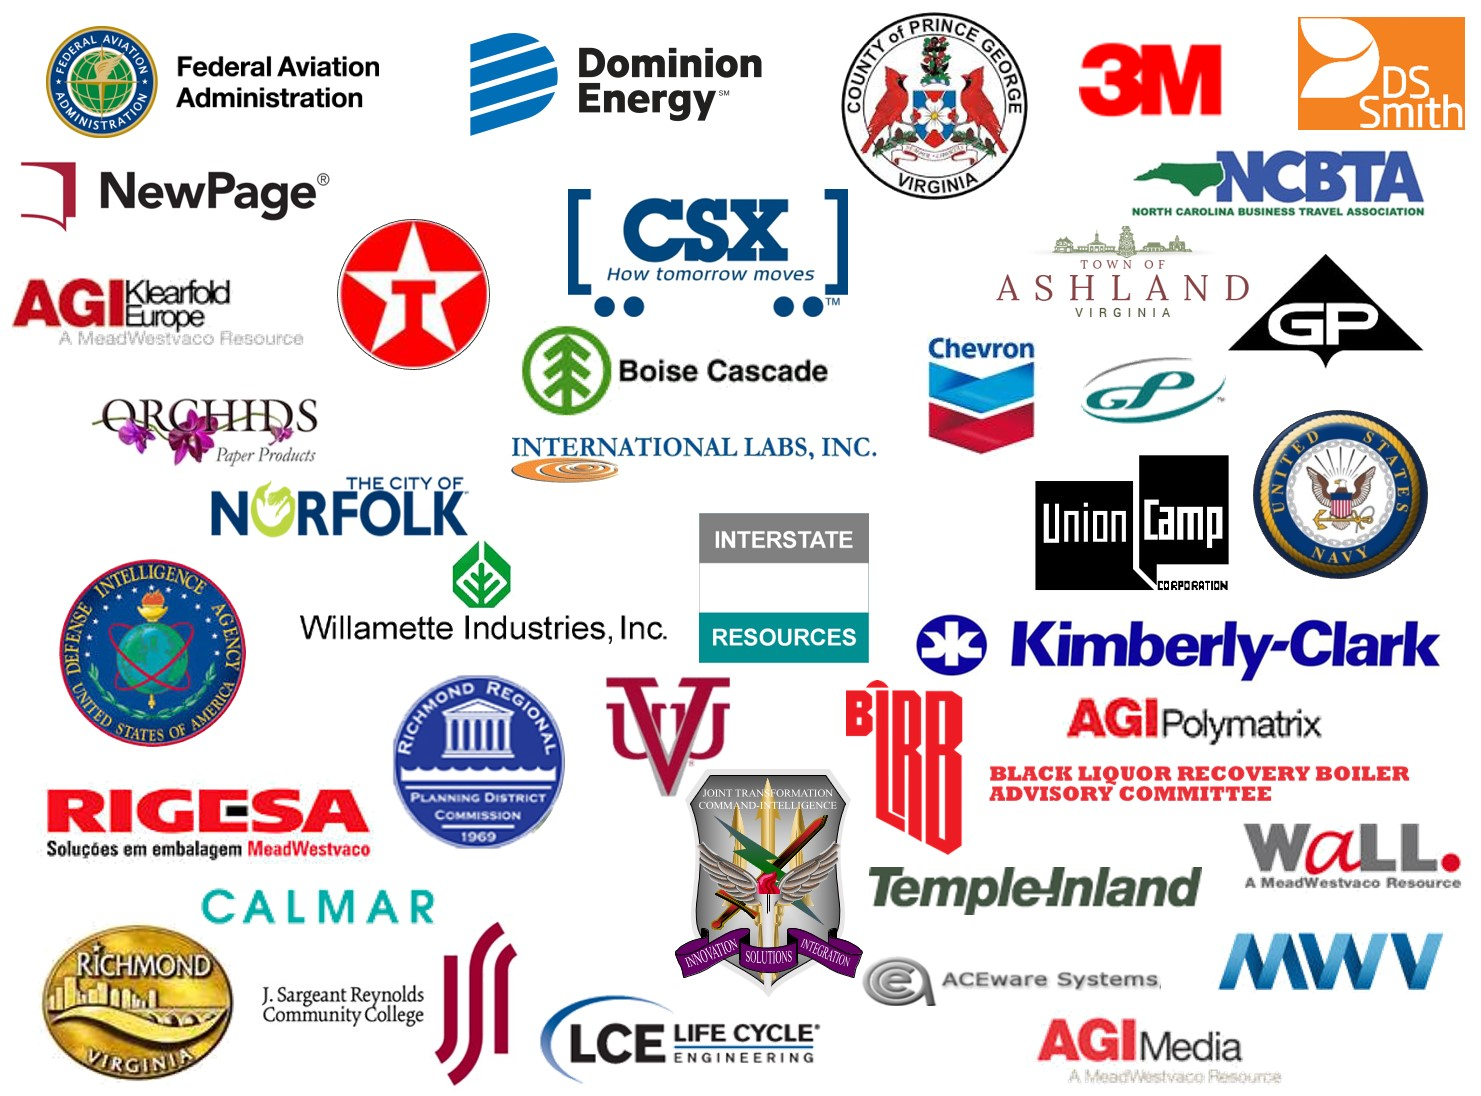 Some of the companies I've had the pleasure of working with over the years